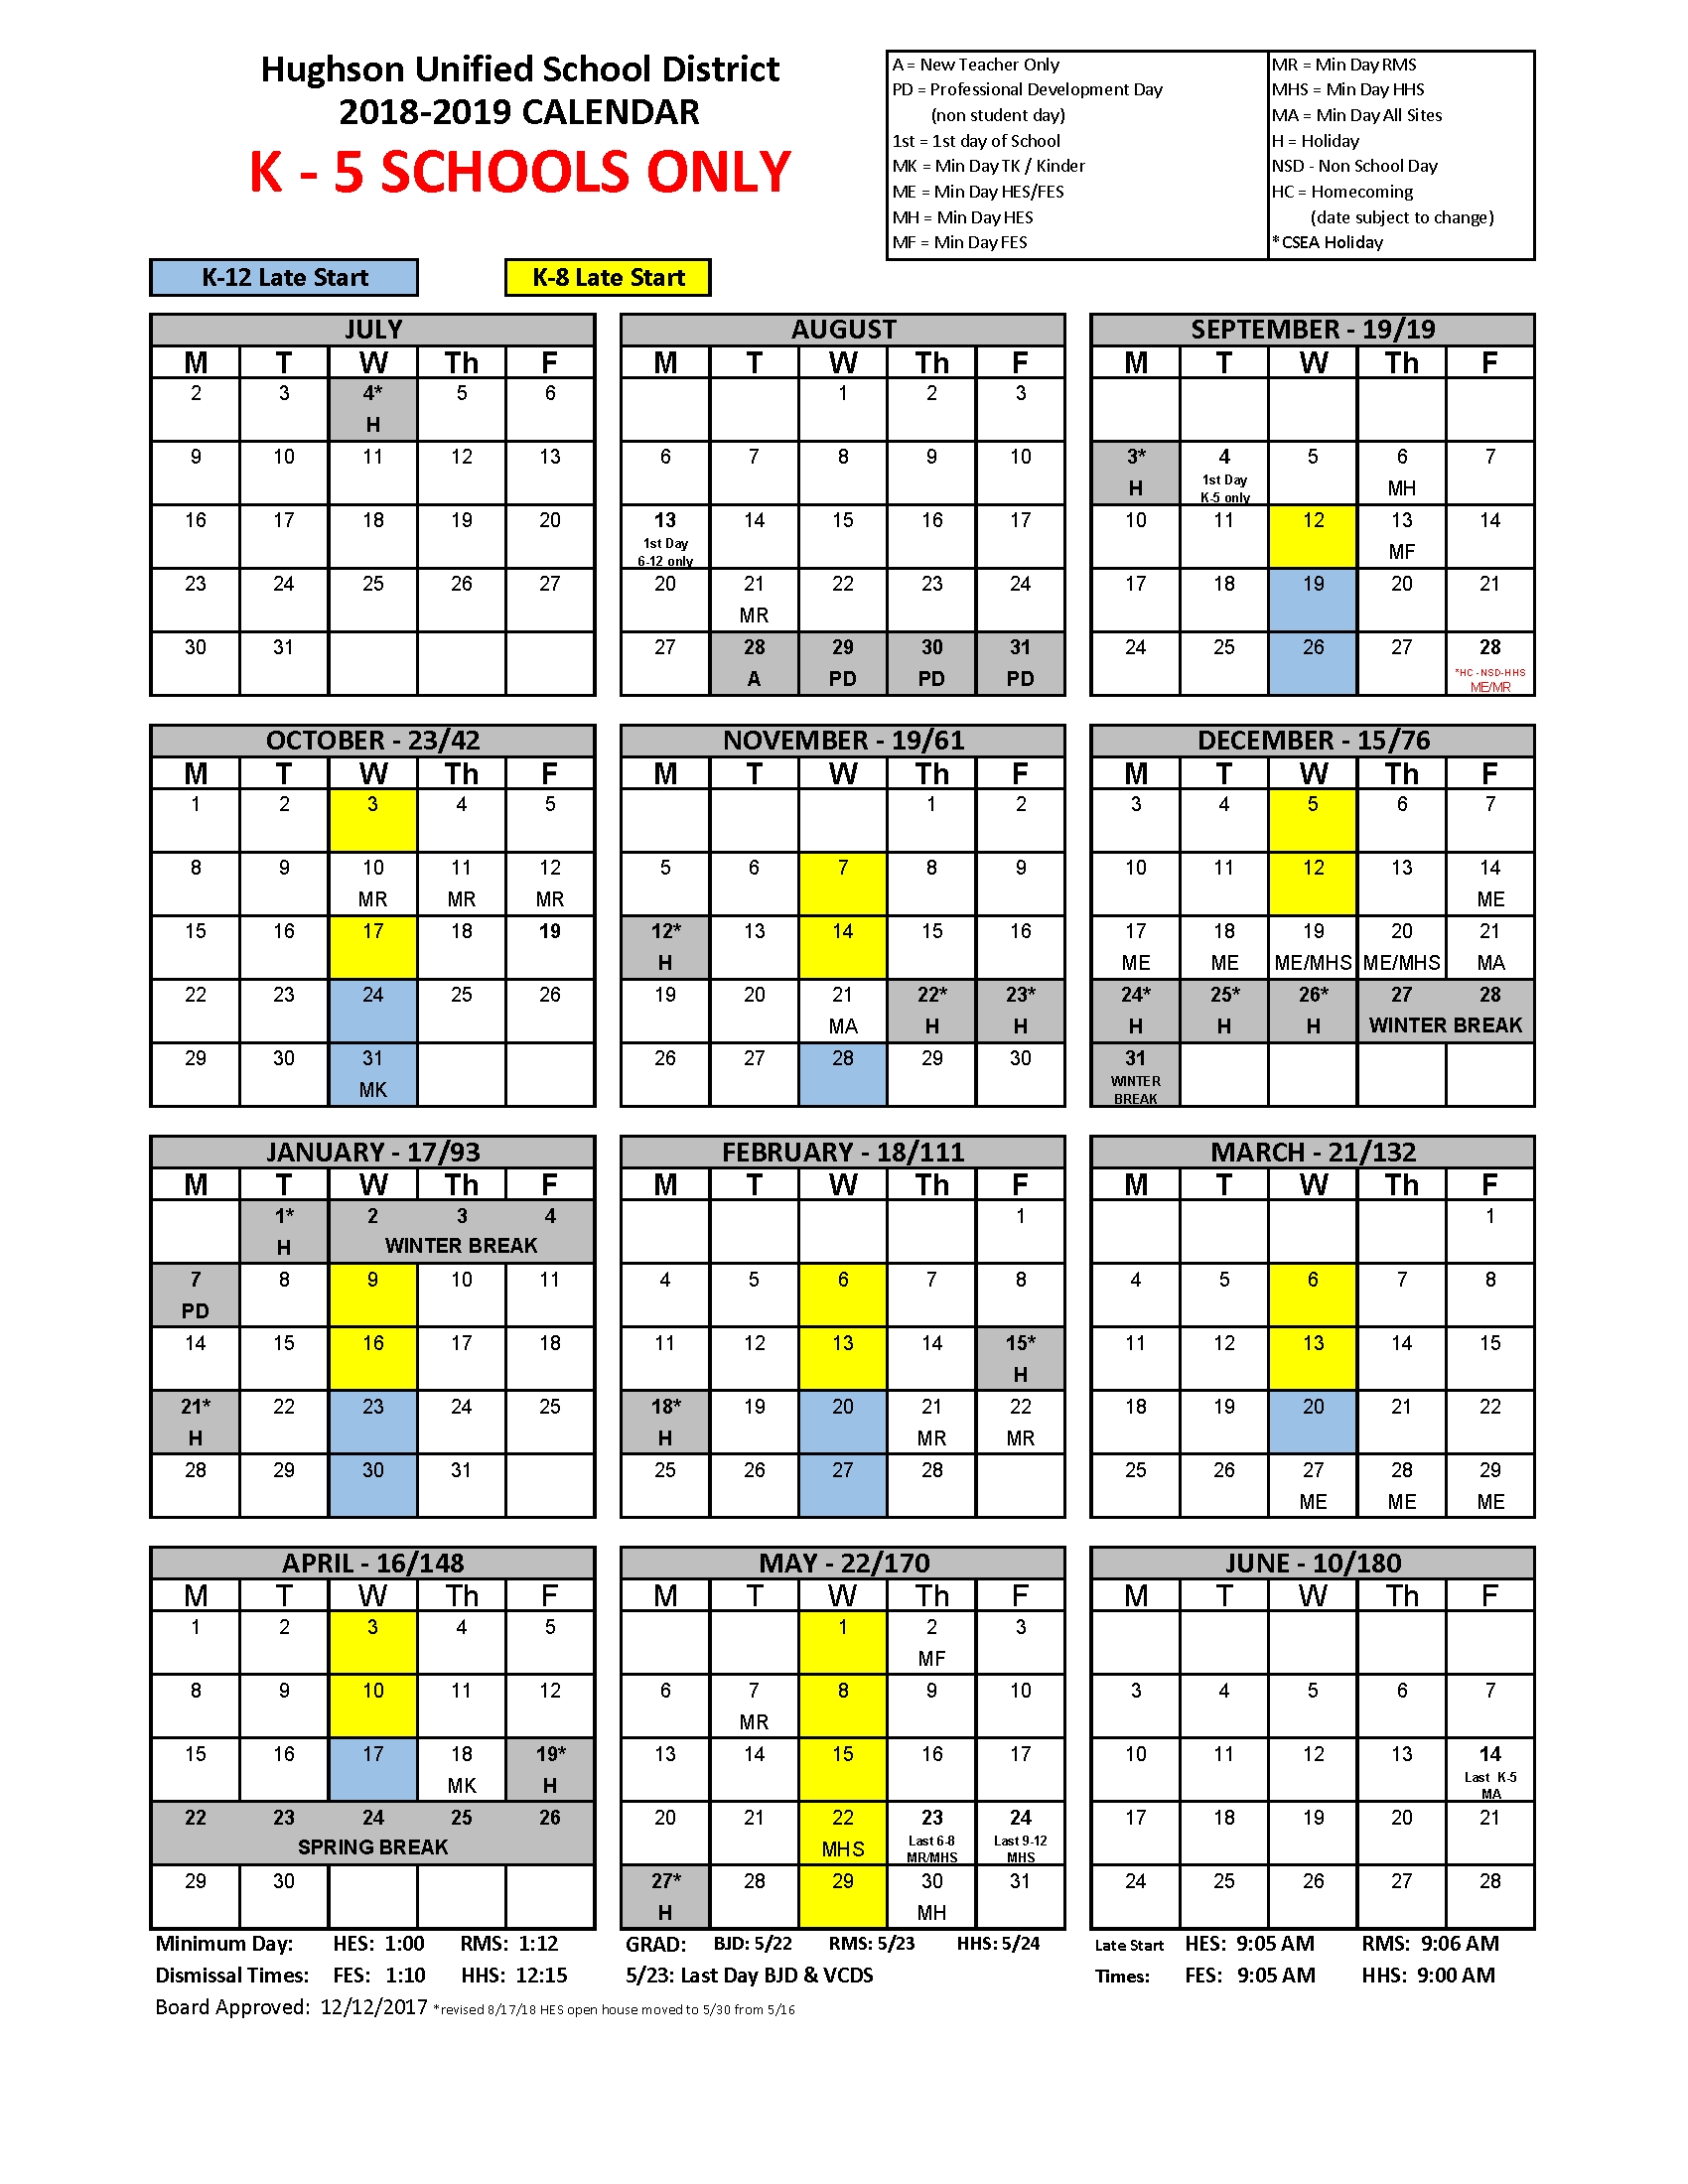 Calendar - Hughson Unified School District J 2019 Calendar